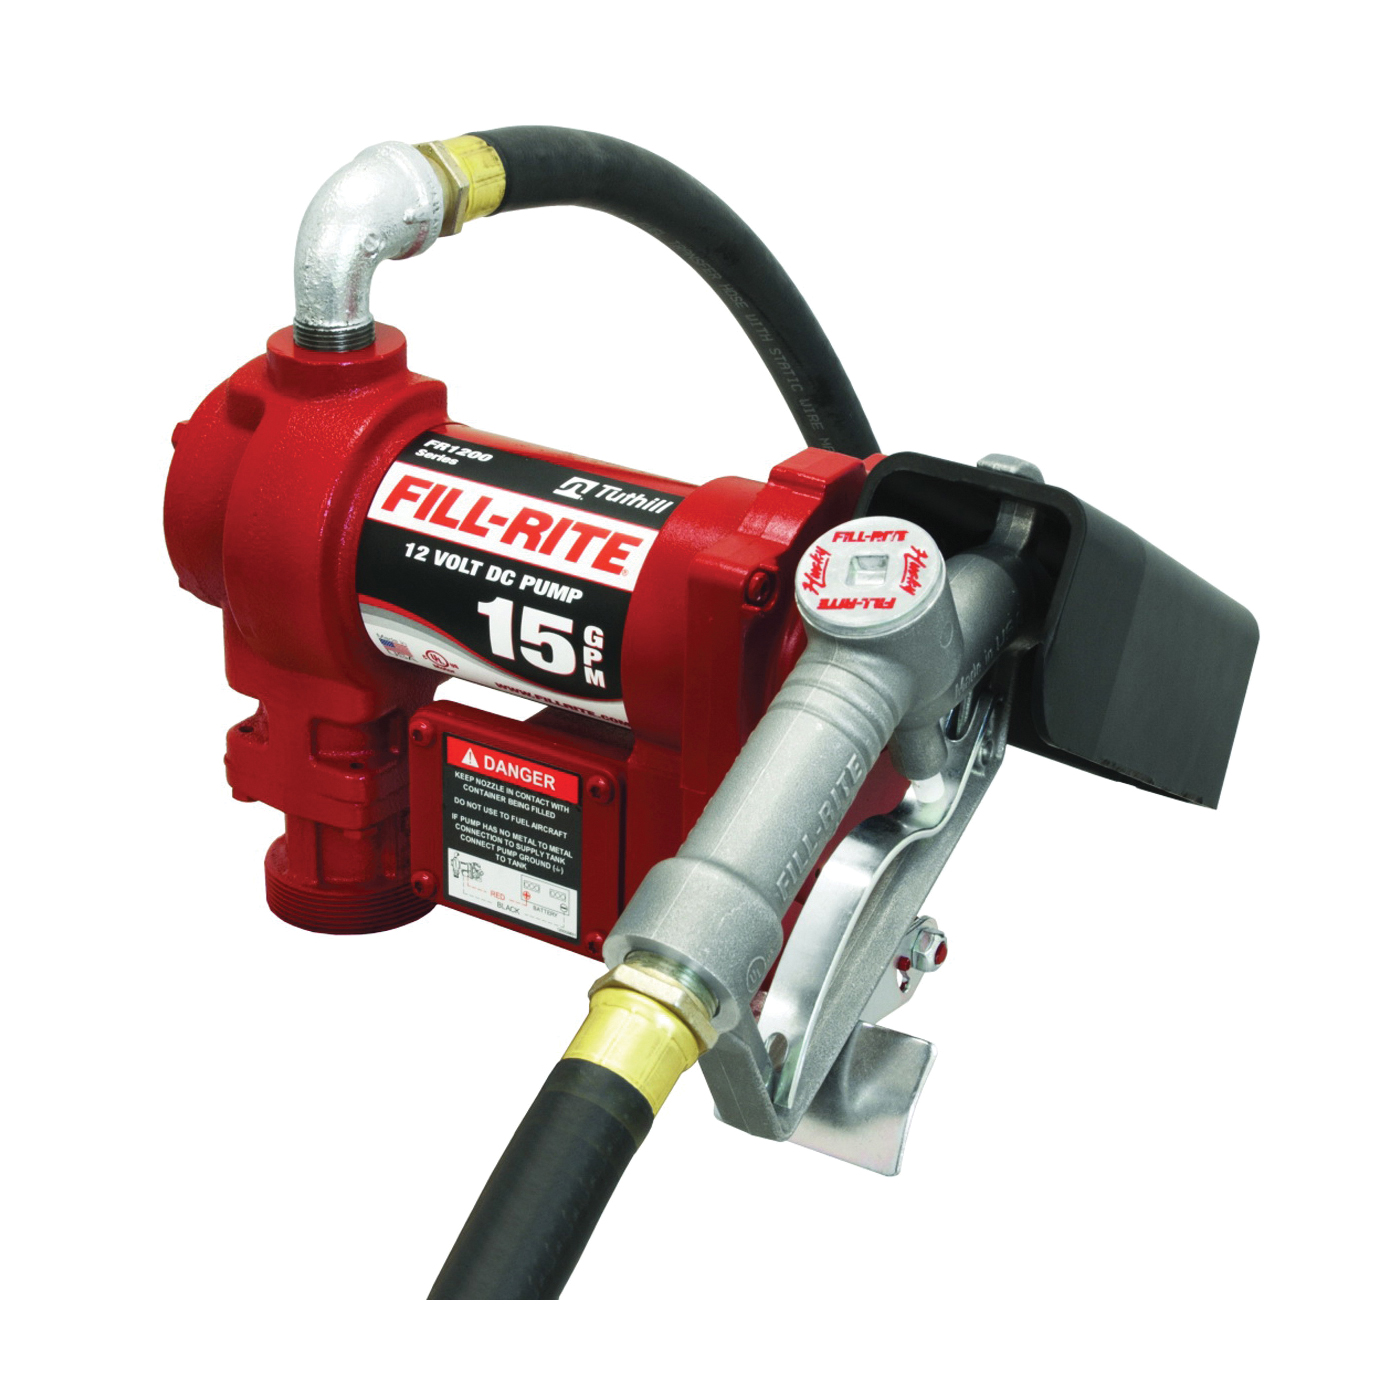 Picture of Fill-Rite FR1210G/FR1210C Fuel Transfer Pump, Motor: 1/4 hp, 12 VDC, 20 A, 30 min Duty Cycle, 3/4 in Outlet, 15 gpm